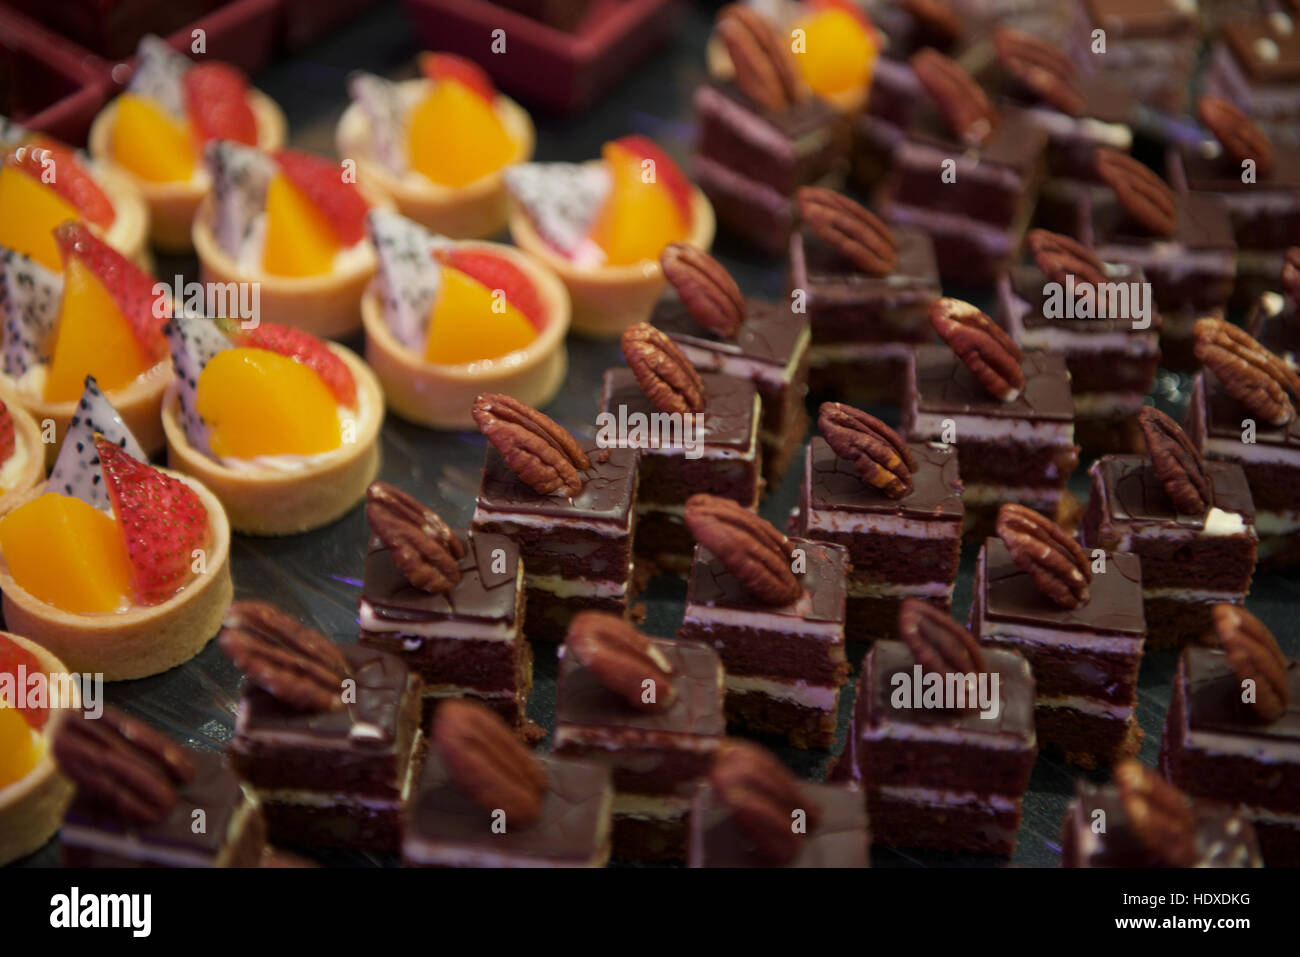 Sweet Dessert canapes food in hotel restaurant - Stock Image